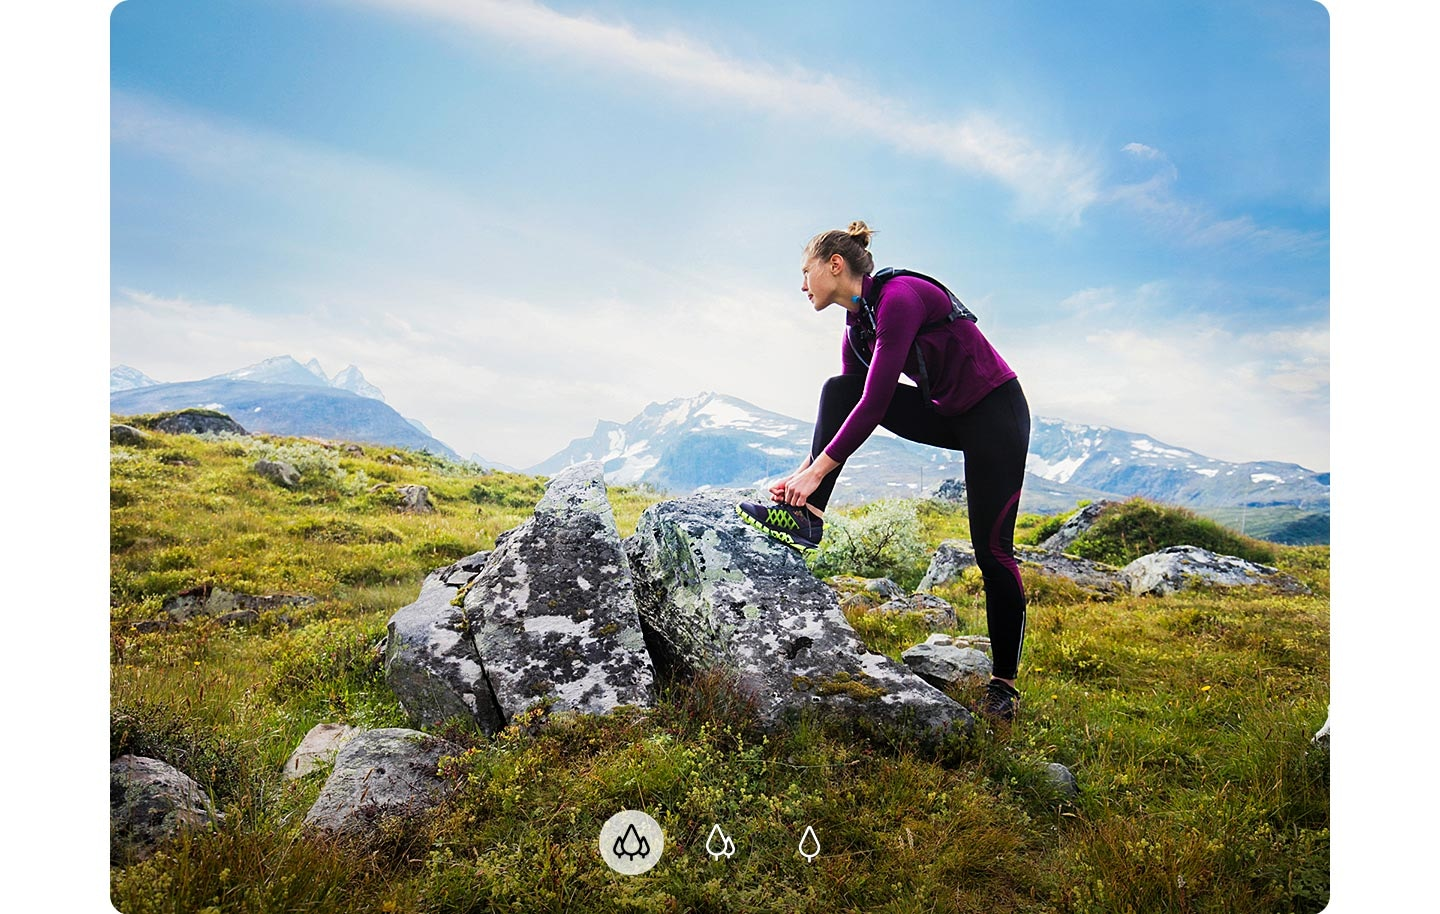 1. A woman staring at a distance with her foot on a rock and mountains shown in the background, indicating A72 can capture a wider image with Ultra Wide Camera.